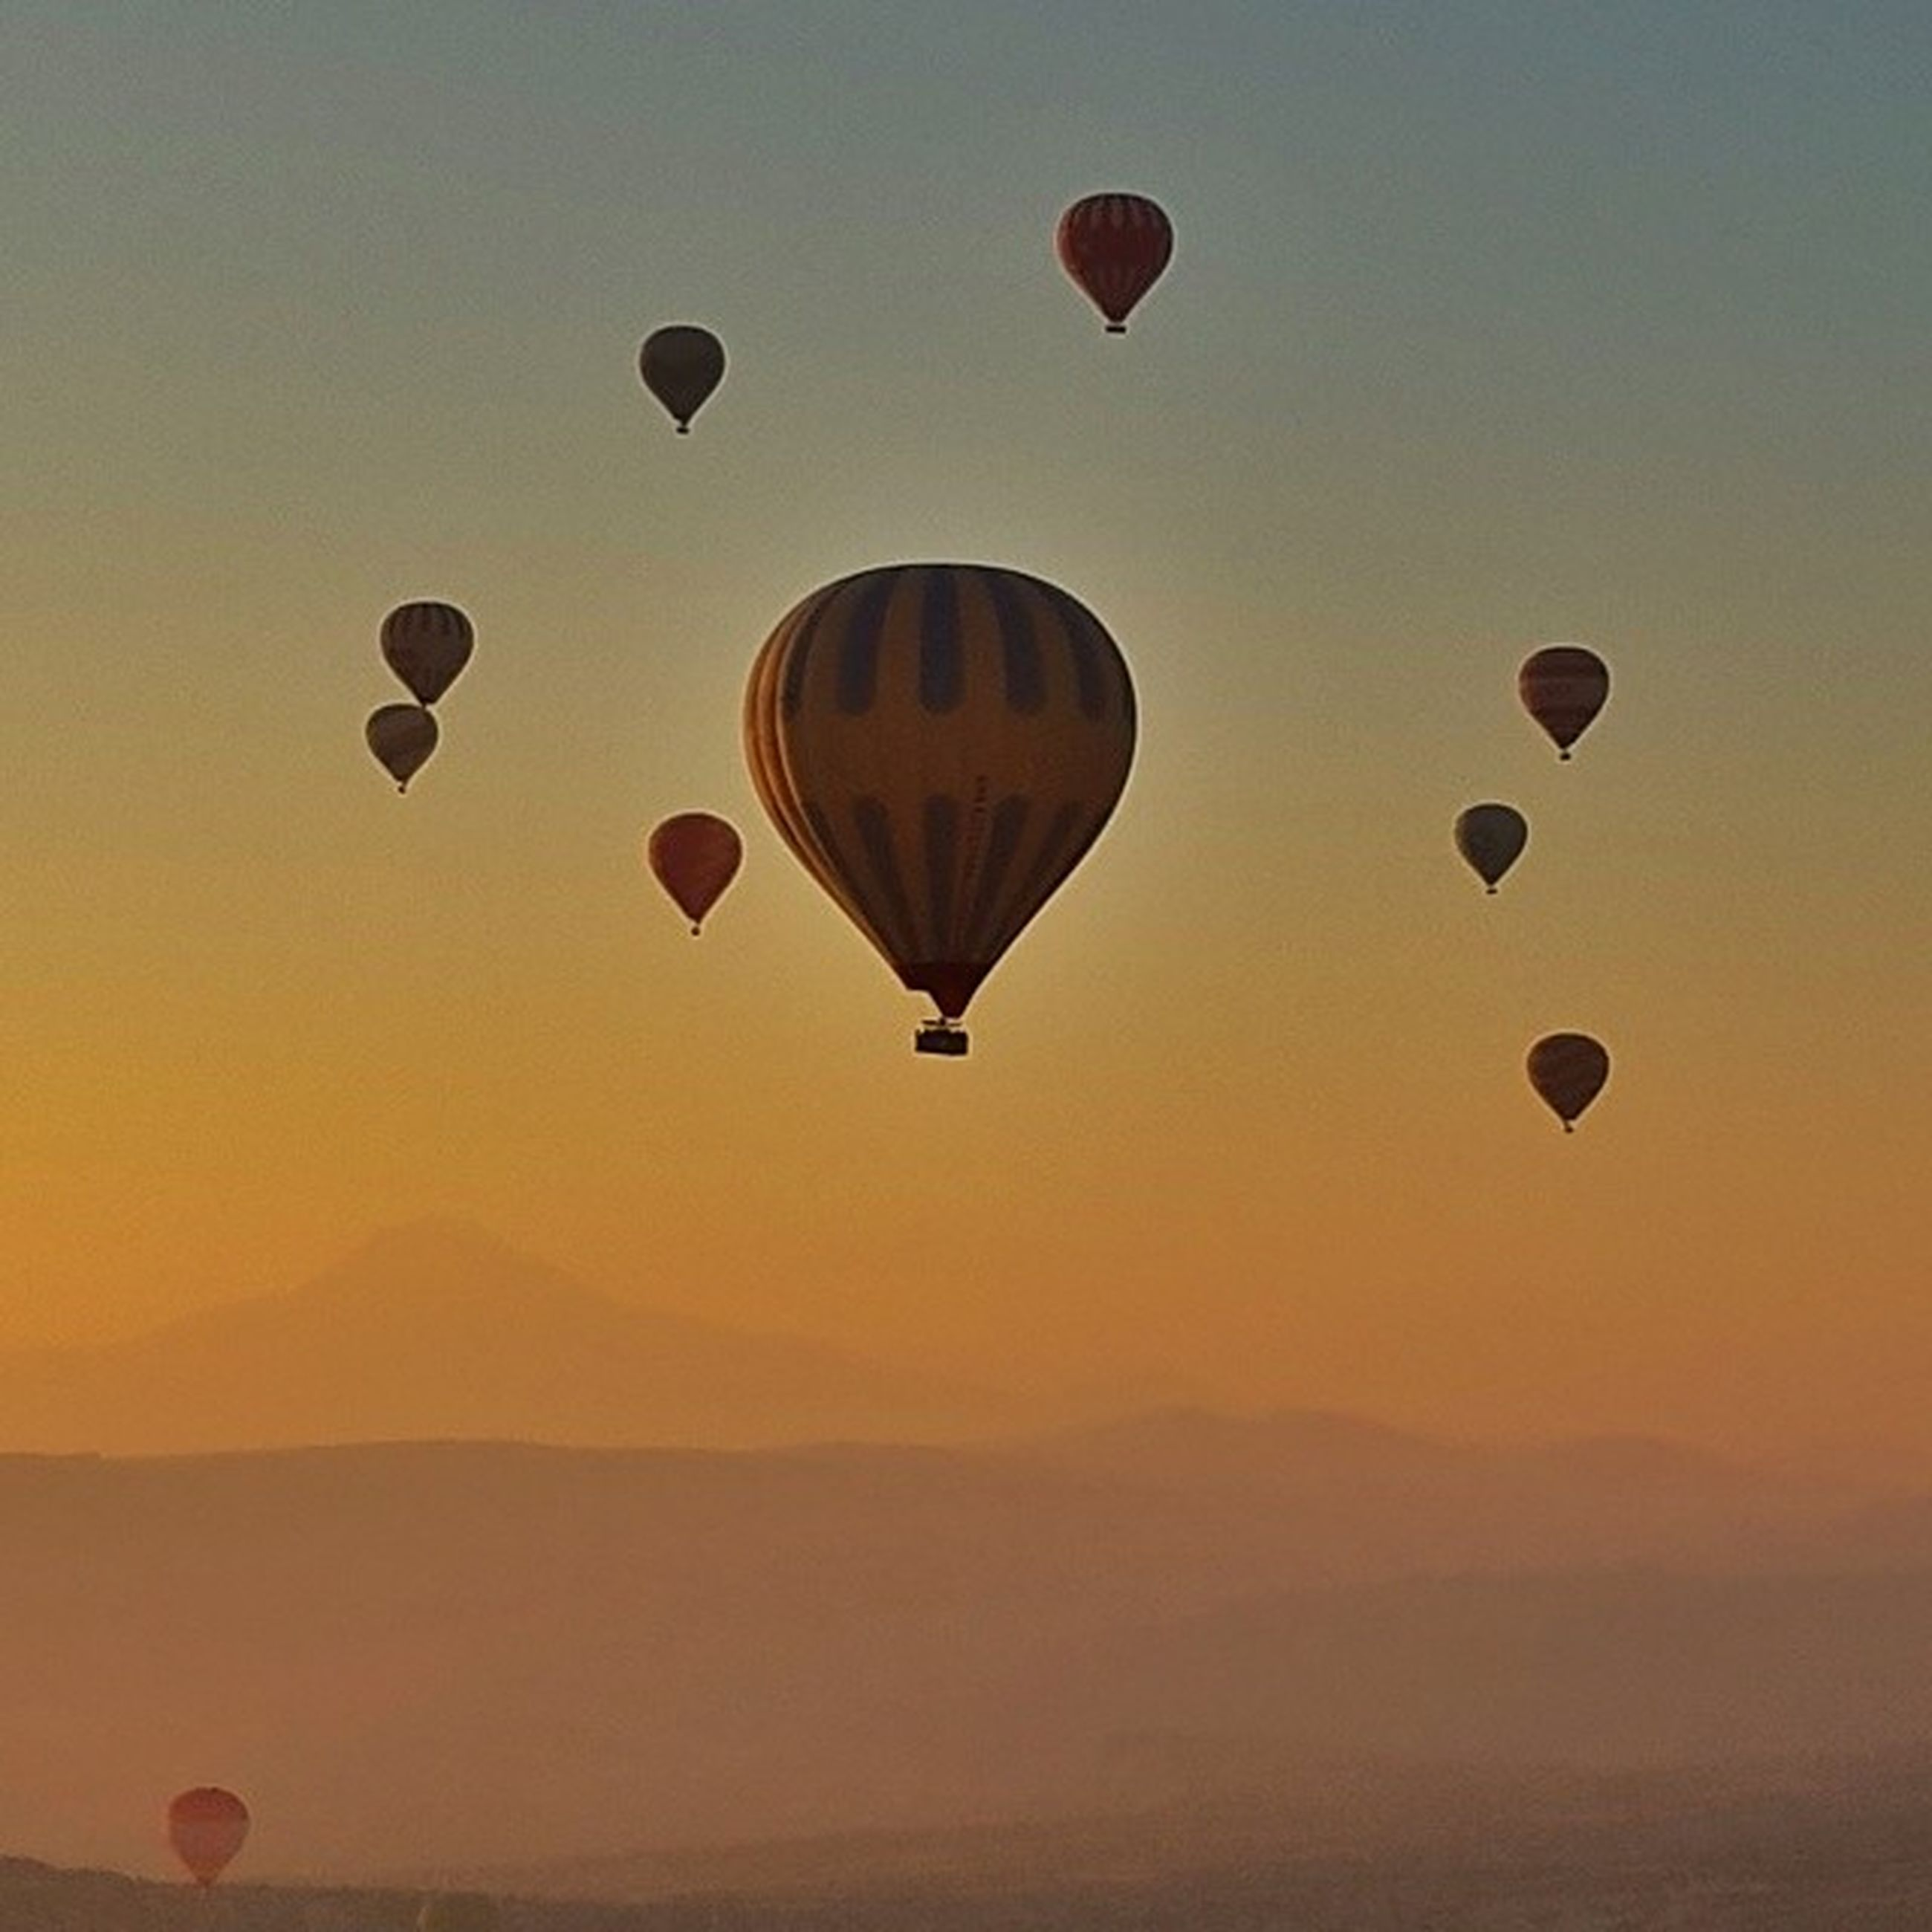 flying, hot air balloon, mid-air, sunset, low angle view, sky, parachute, orange color, transportation, air vehicle, copy space, multi colored, silhouette, adventure, scenics, outdoors, dusk, clear sky, nature, tranquility